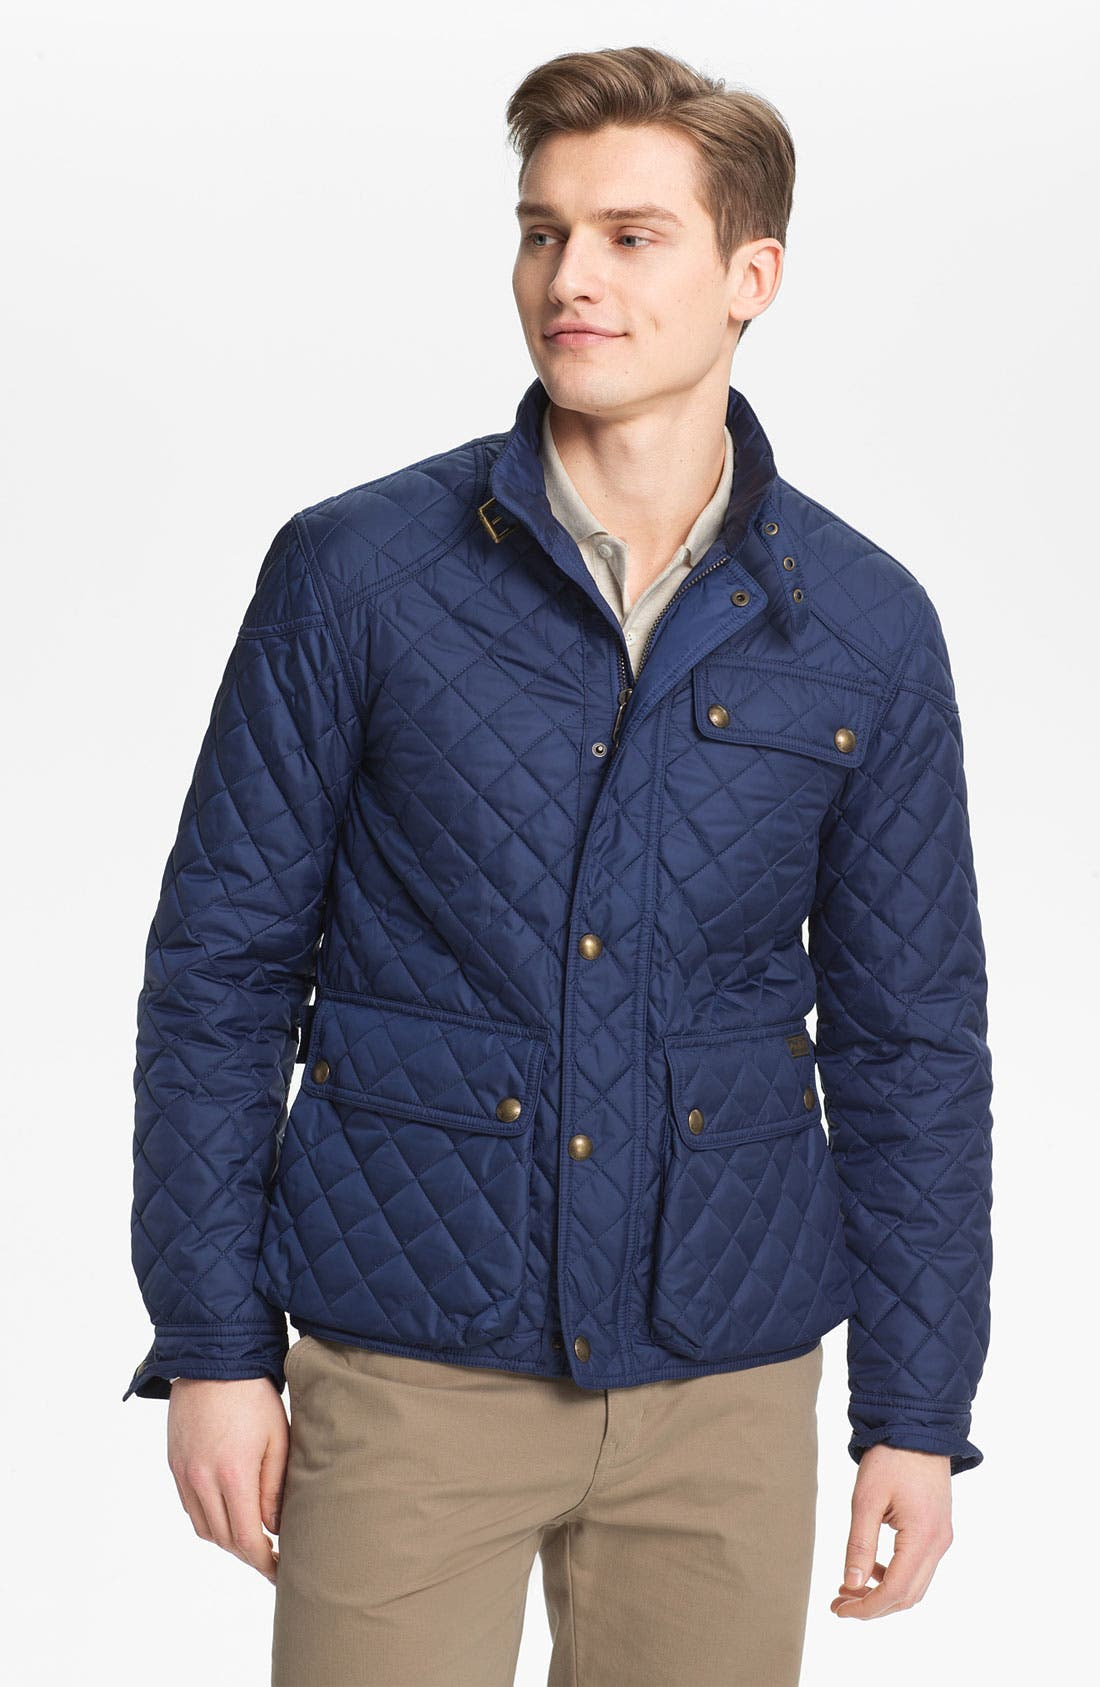 Main Image - Polo Ralph Lauren 'Cadwell' Quilted Bomber Jacket